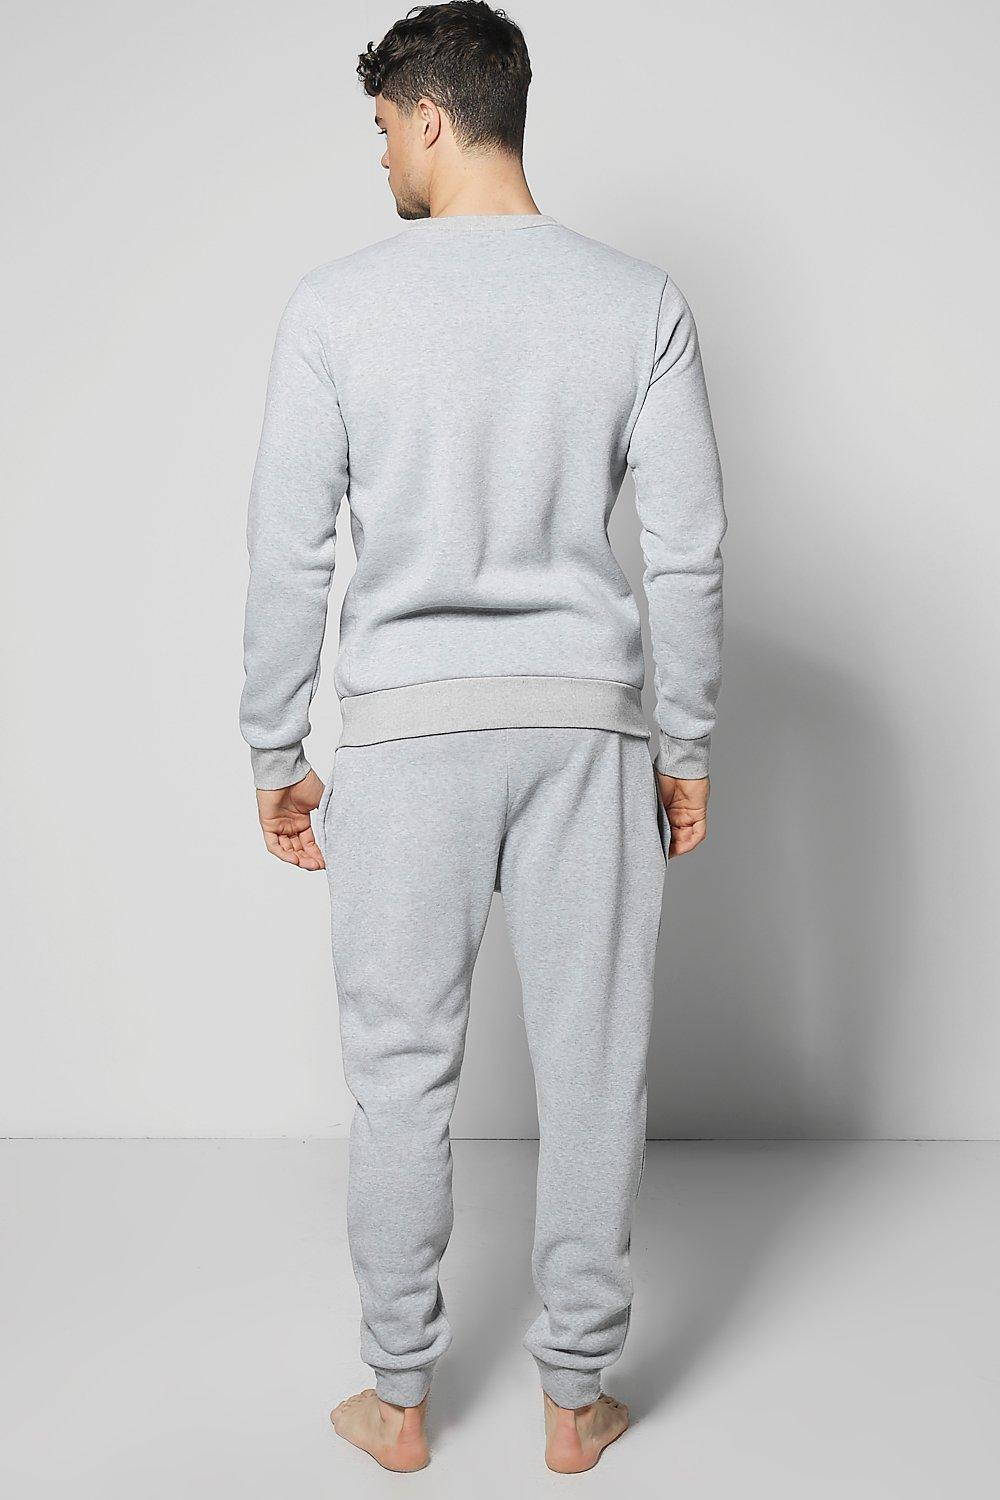 Boohoo-Mens-Zzz-Skinny-Fit-Lounge-Jogger